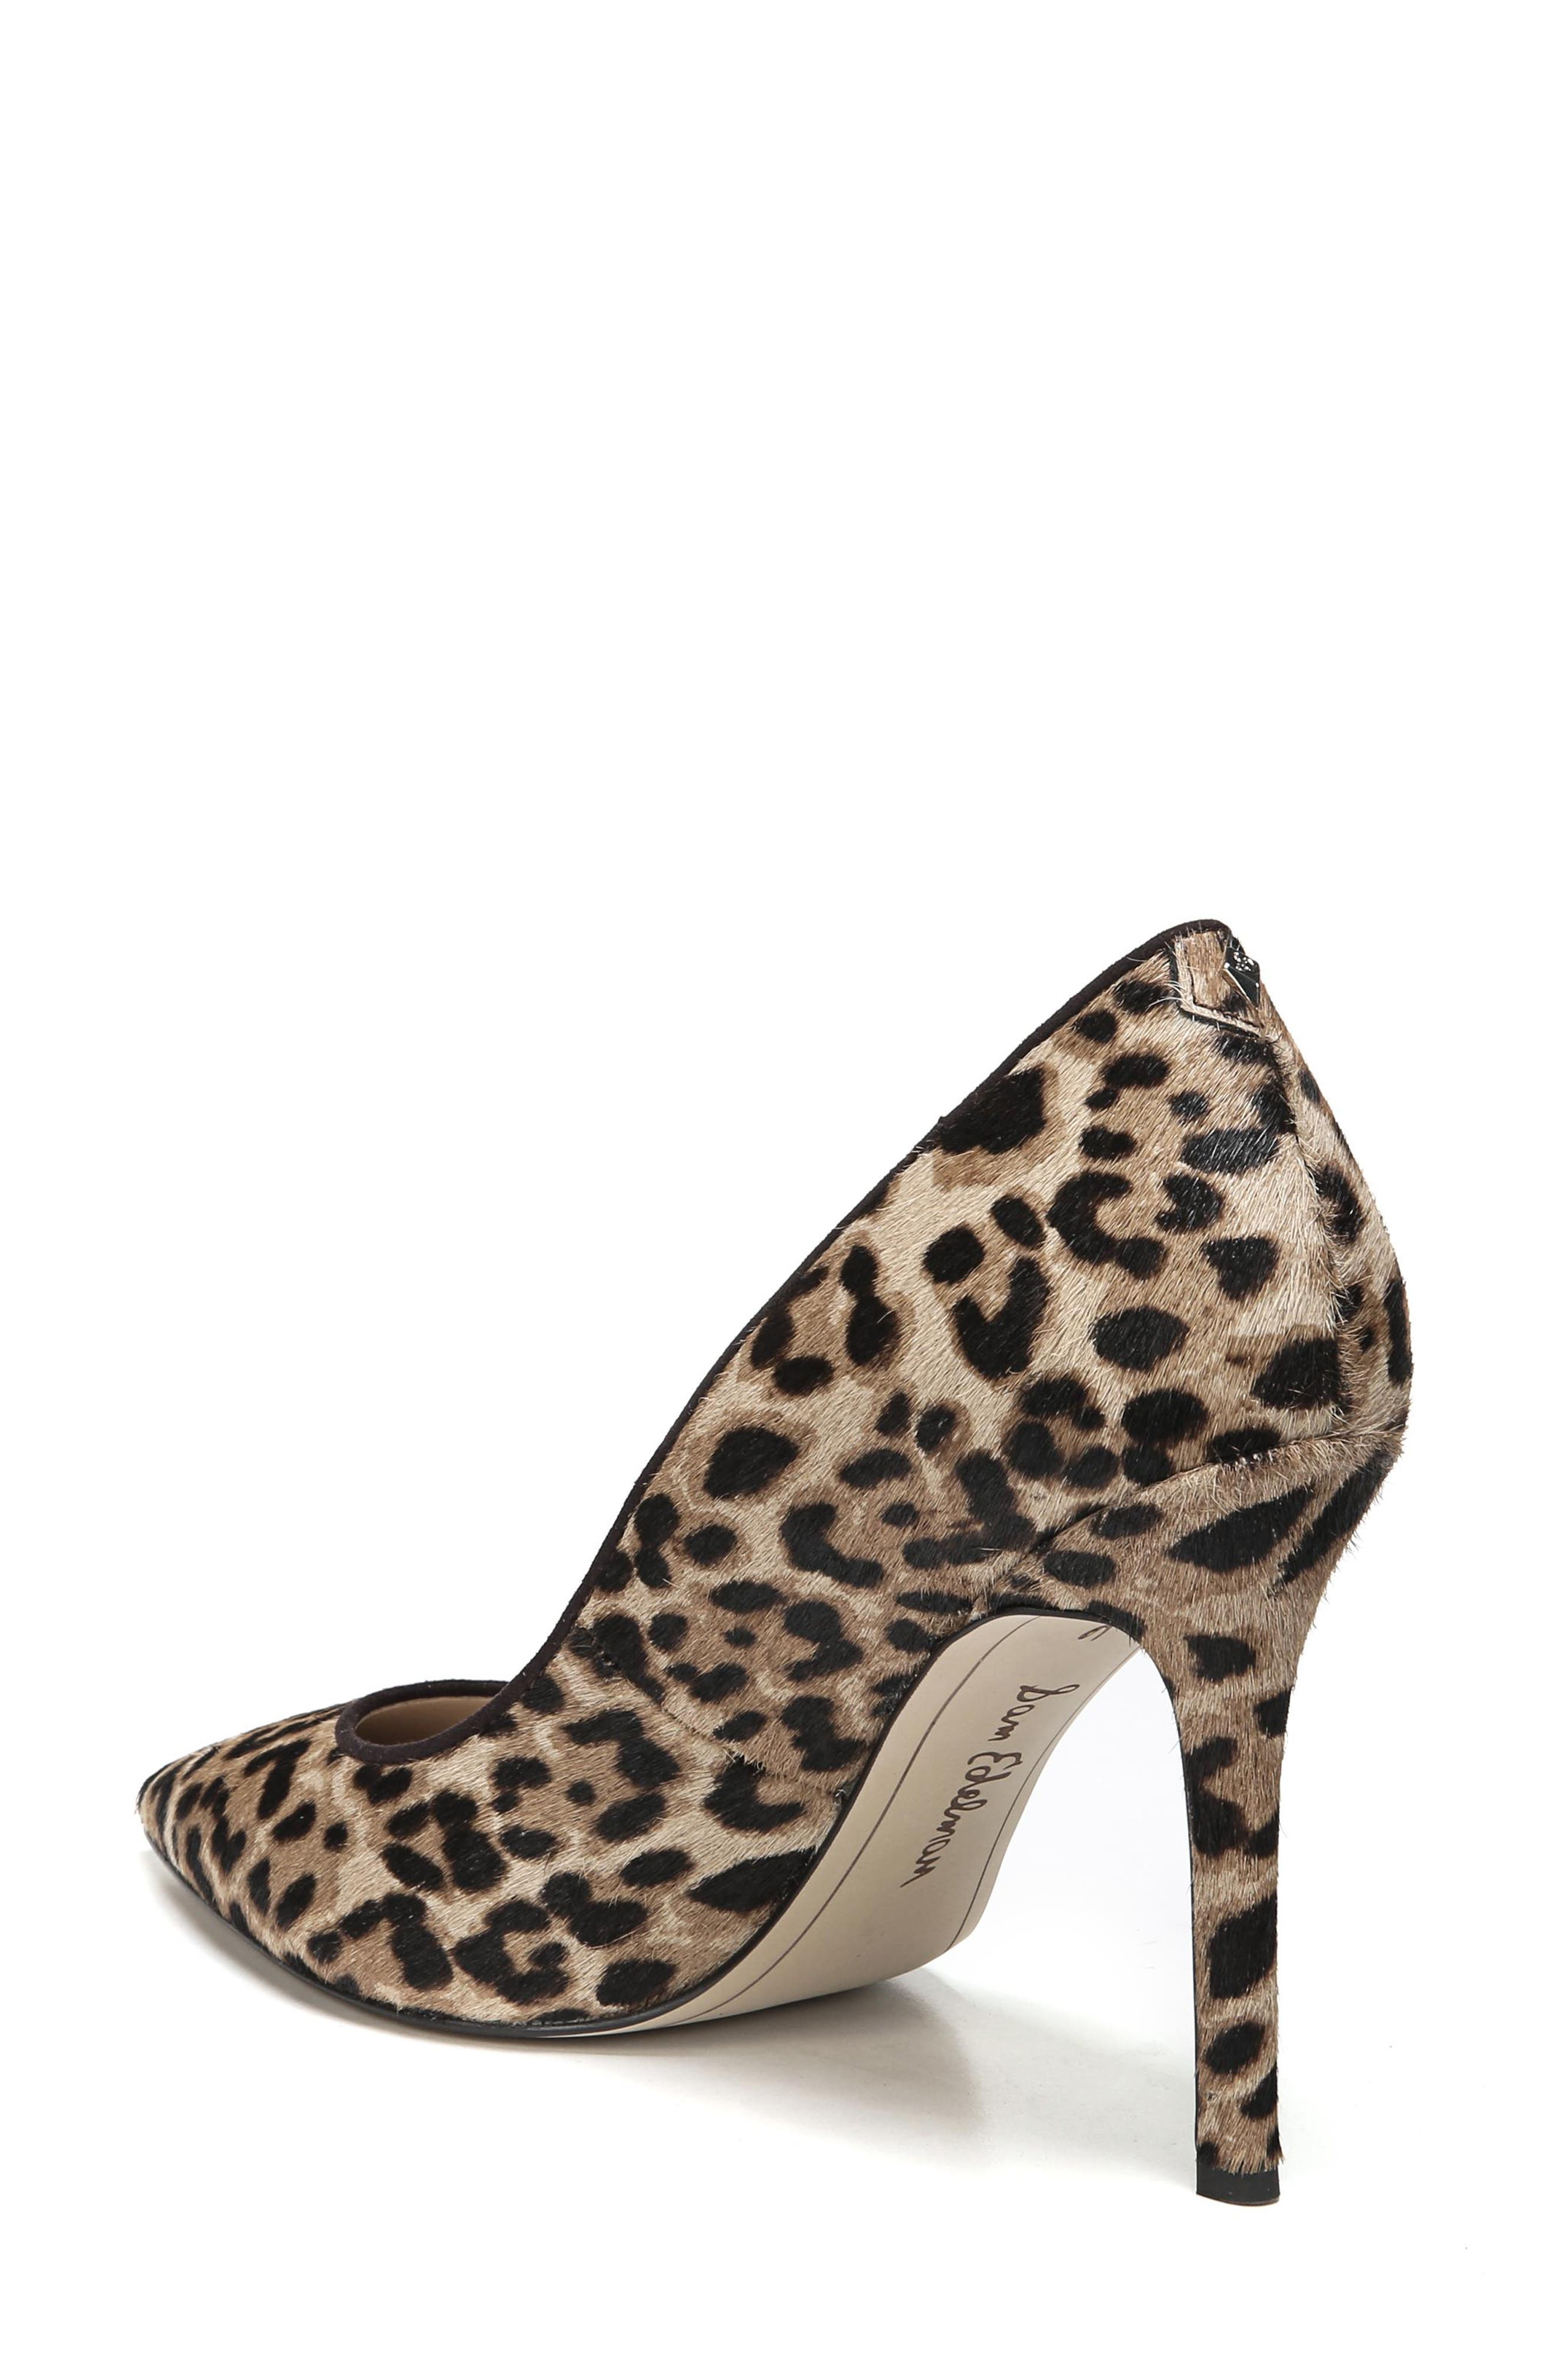 Hazel Pointy Toe Pump,                             Alternate thumbnail 2, color,                             LEOPARD CALF HAIR